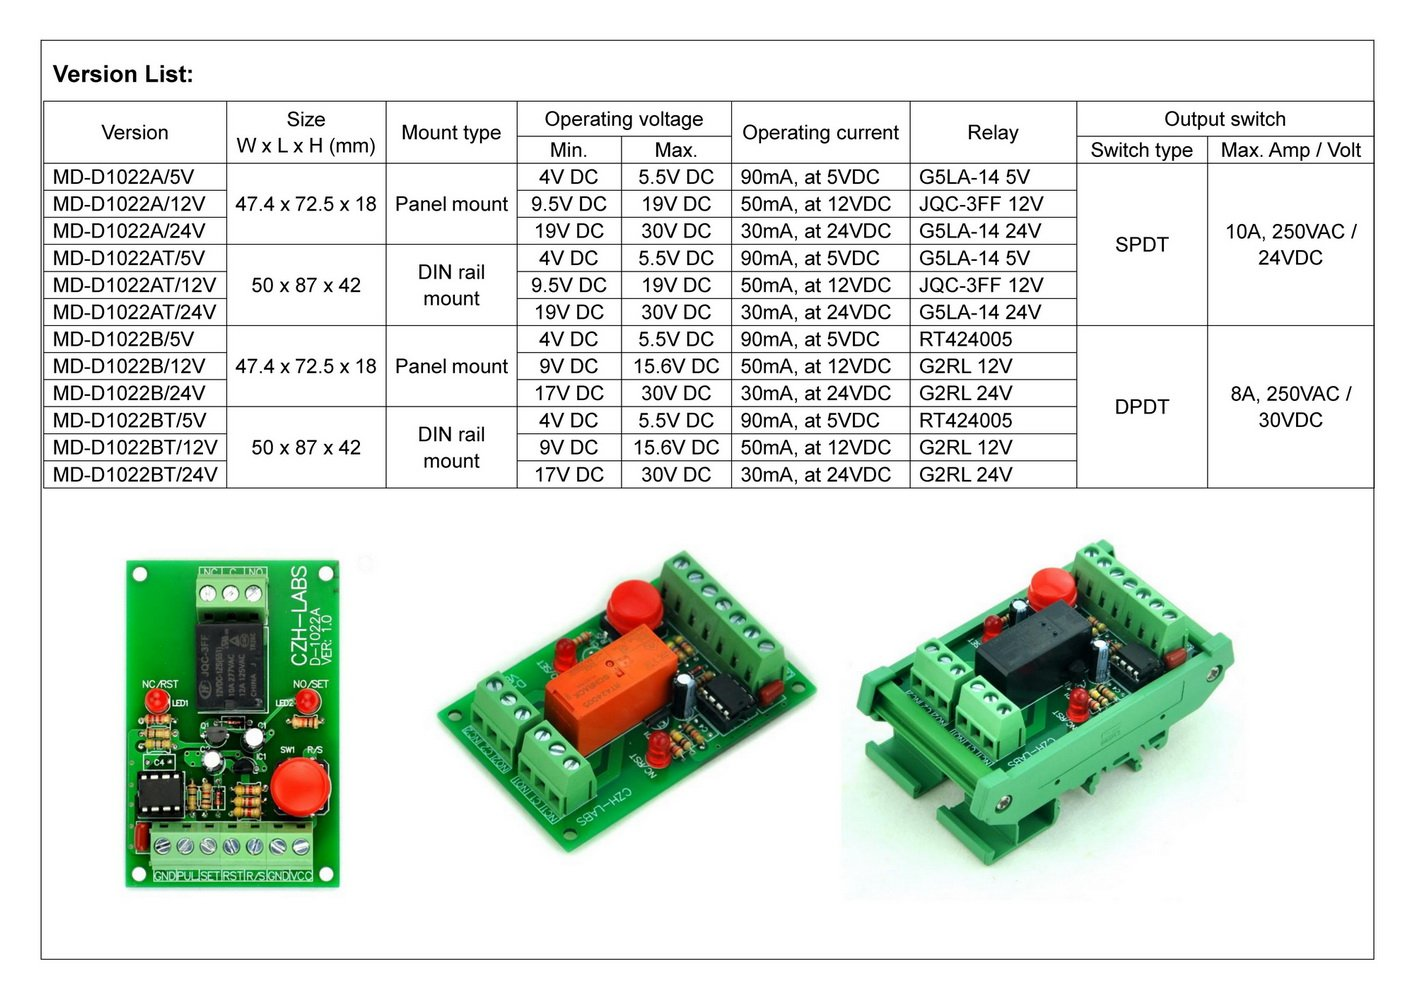 Electronics Salon Panel Mount Momentary Switch Pulse Signal Control How To Build Relay Toggle Circuit Using A 556 Timer Latching Spdt Module 12v Industrial Scientific